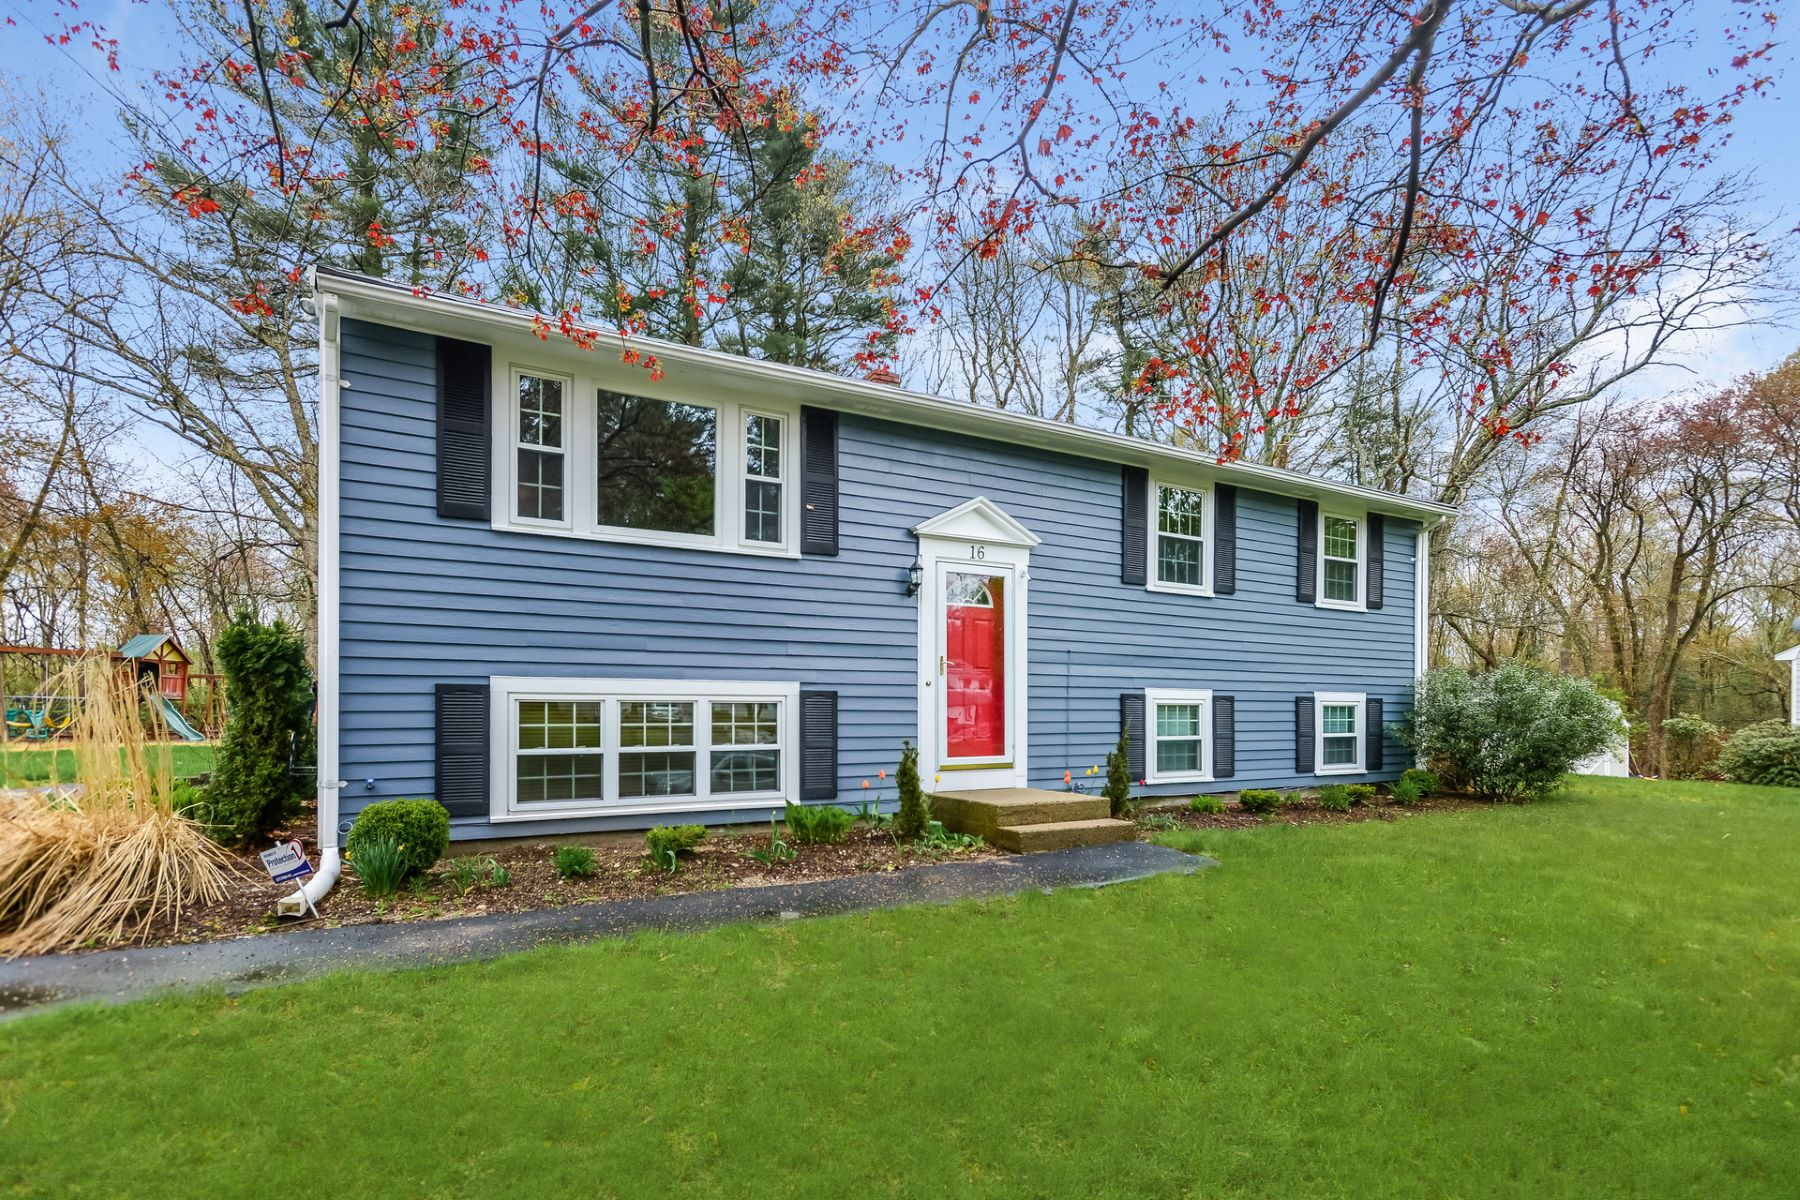 Single Family Homes for Active at 16 Tall Tree Rd Sharon, Massachusetts 02067 United States